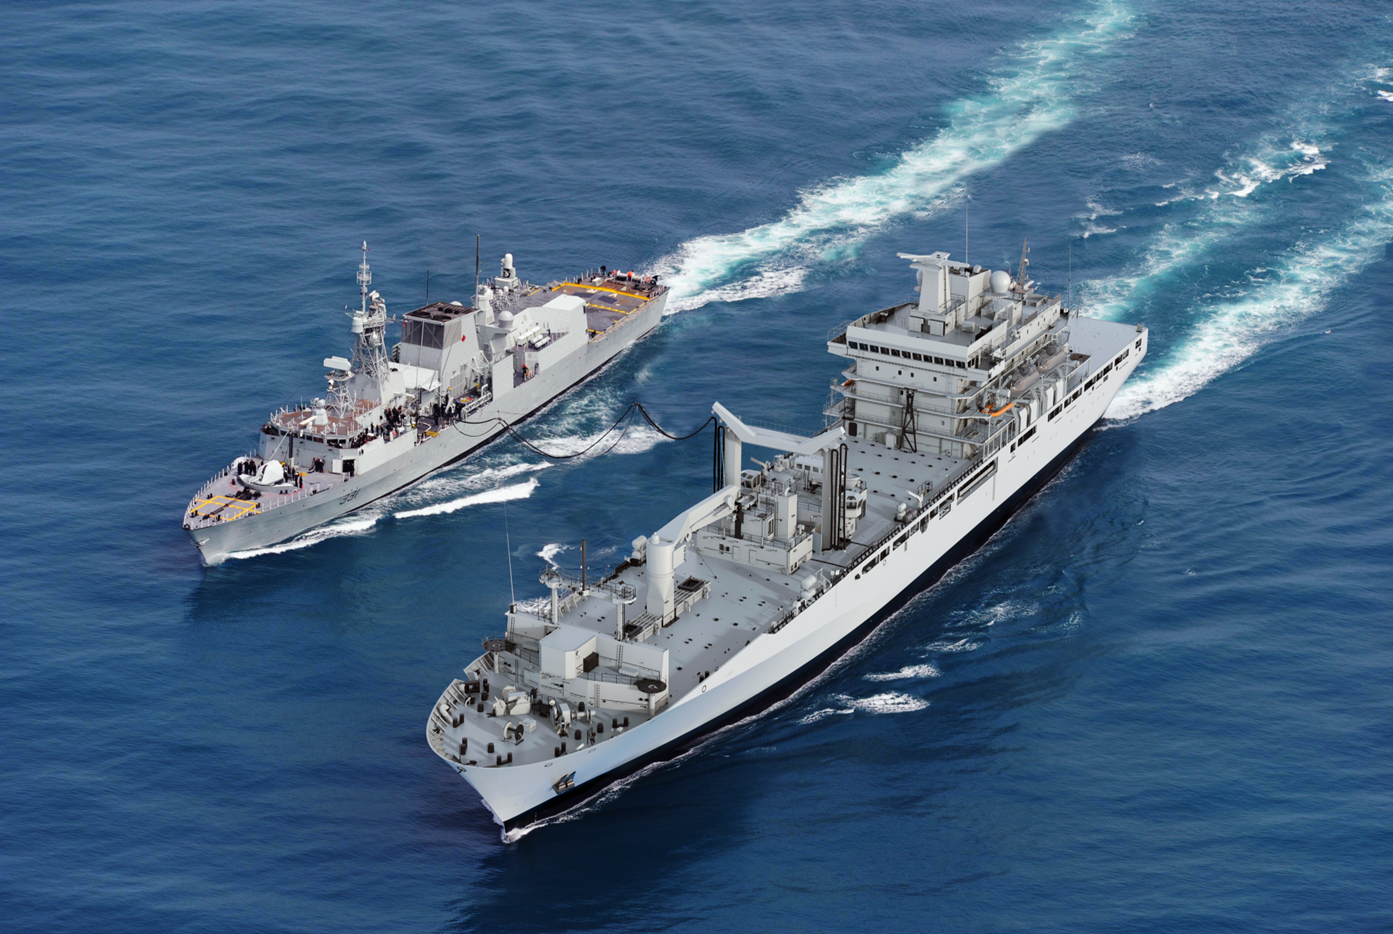 Hepburn Engineering secures contract to provide replenishment systems for Canada's Joint Support Ships